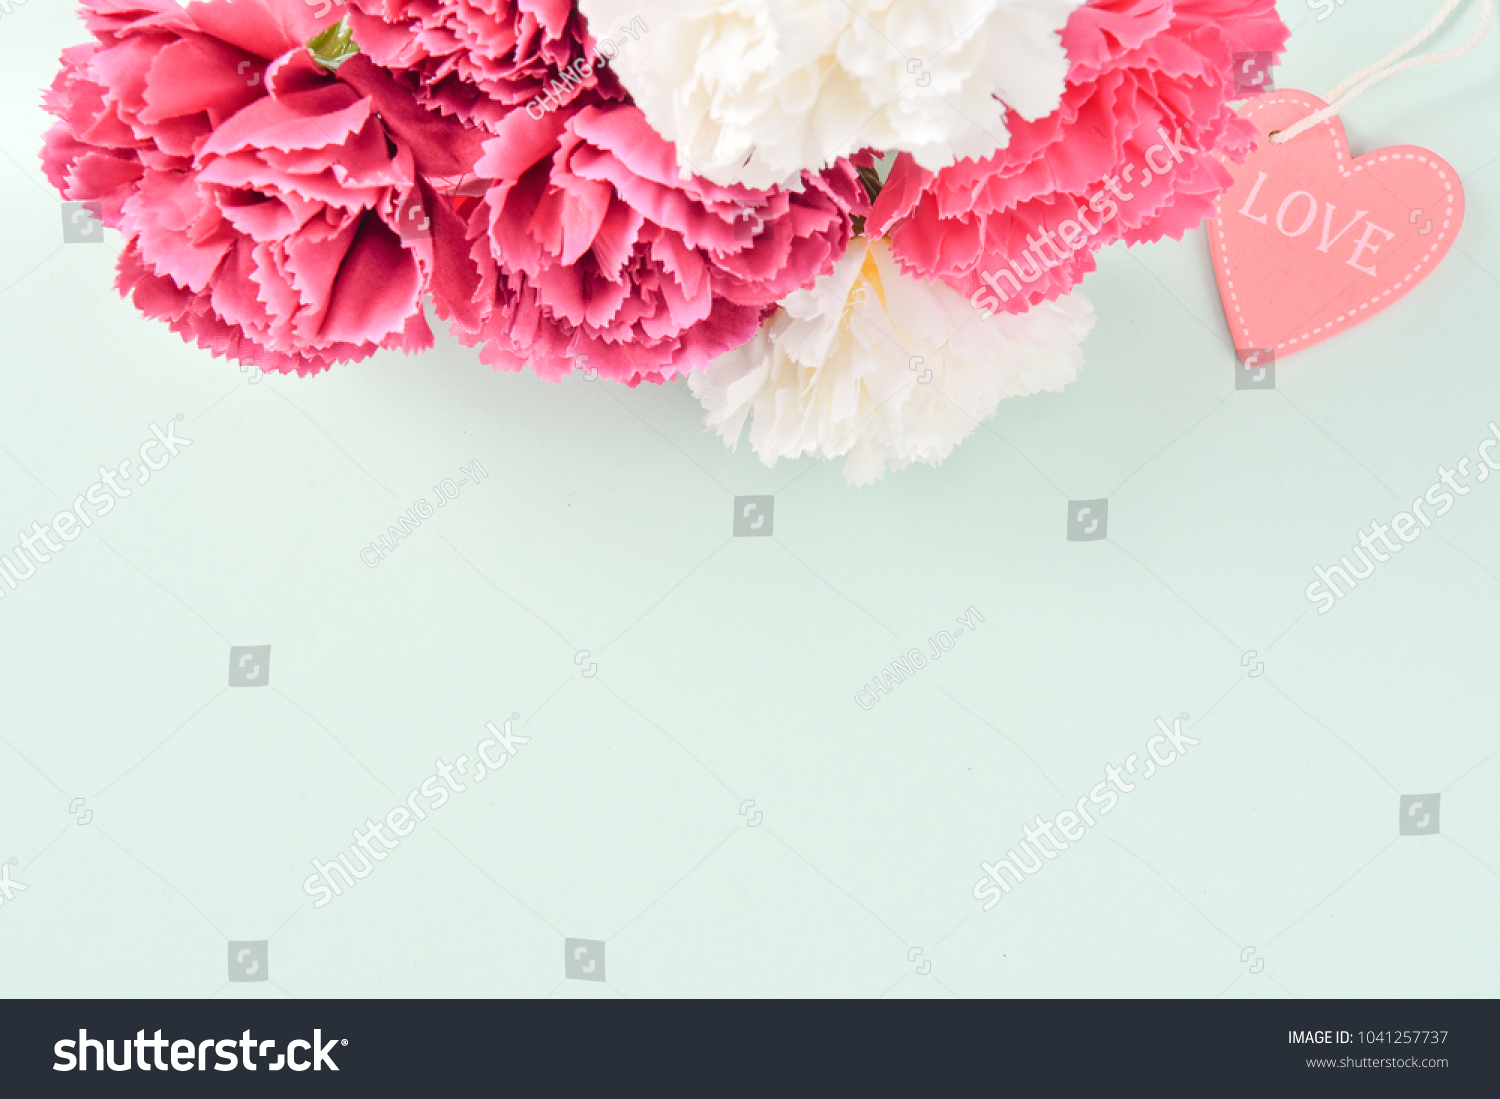 May Mothers Day Carnation Bunch Flowers Stock Photo & Image (Royalty ...